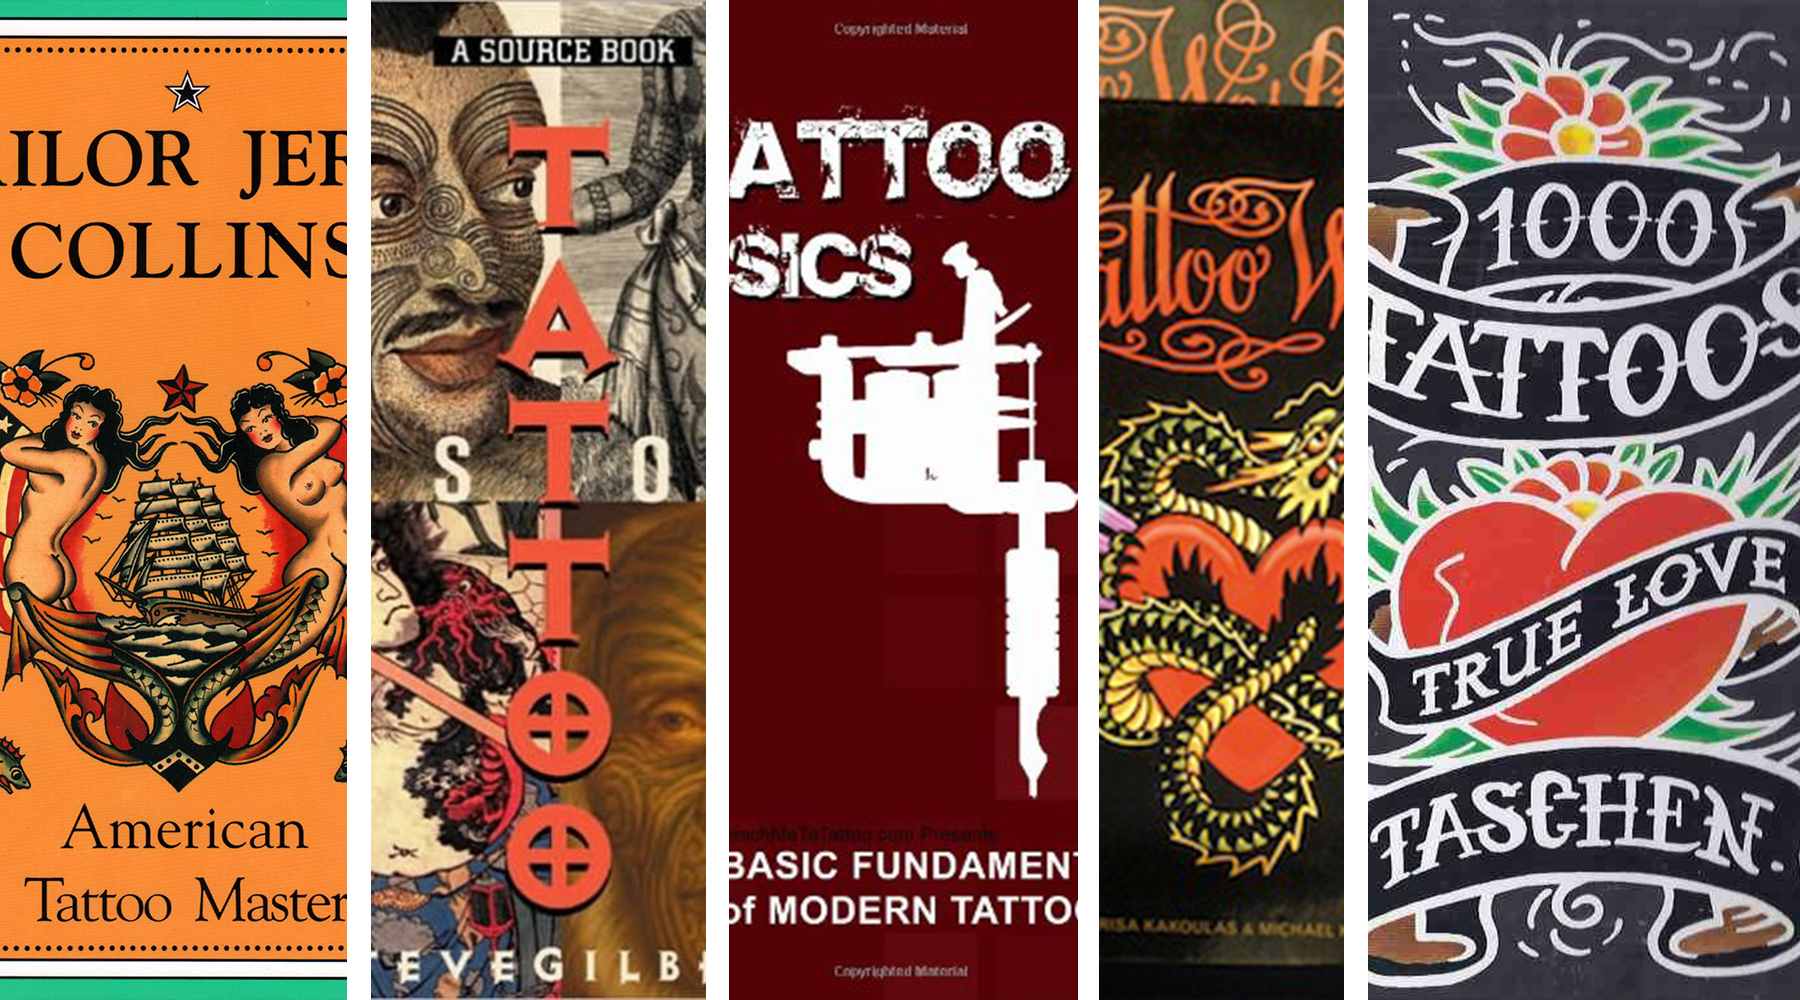 Looking to spruce up your knowledge of the tattoo game? Whether you want to find out about the history behind tattoos, get an-indepth look at certain tattoo styles, get some inspiration for your next ...